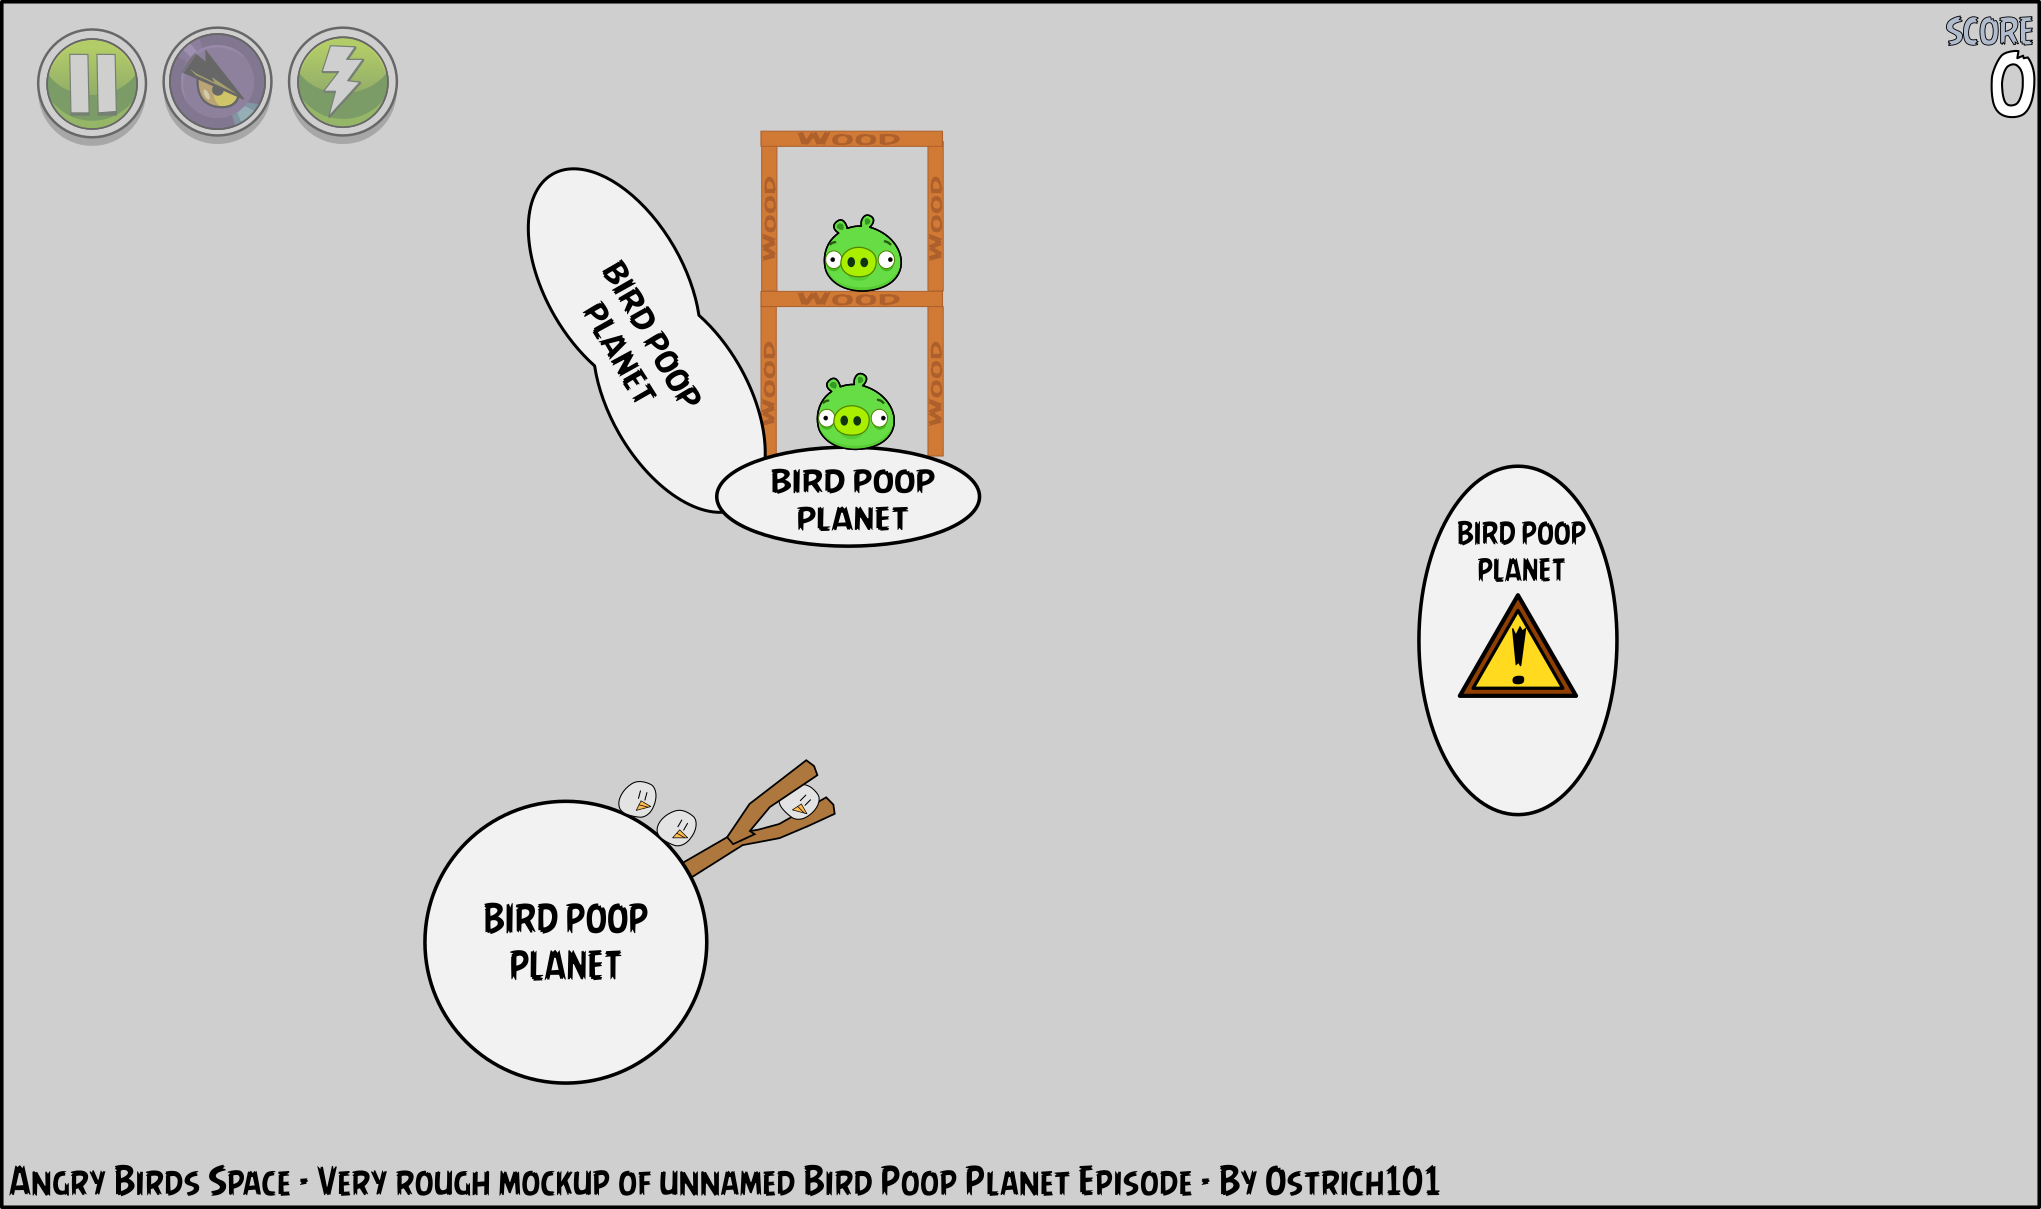 [Image: Angry_Birds_Space_Bird_Poop_Planet_Rough_Mockup.png]